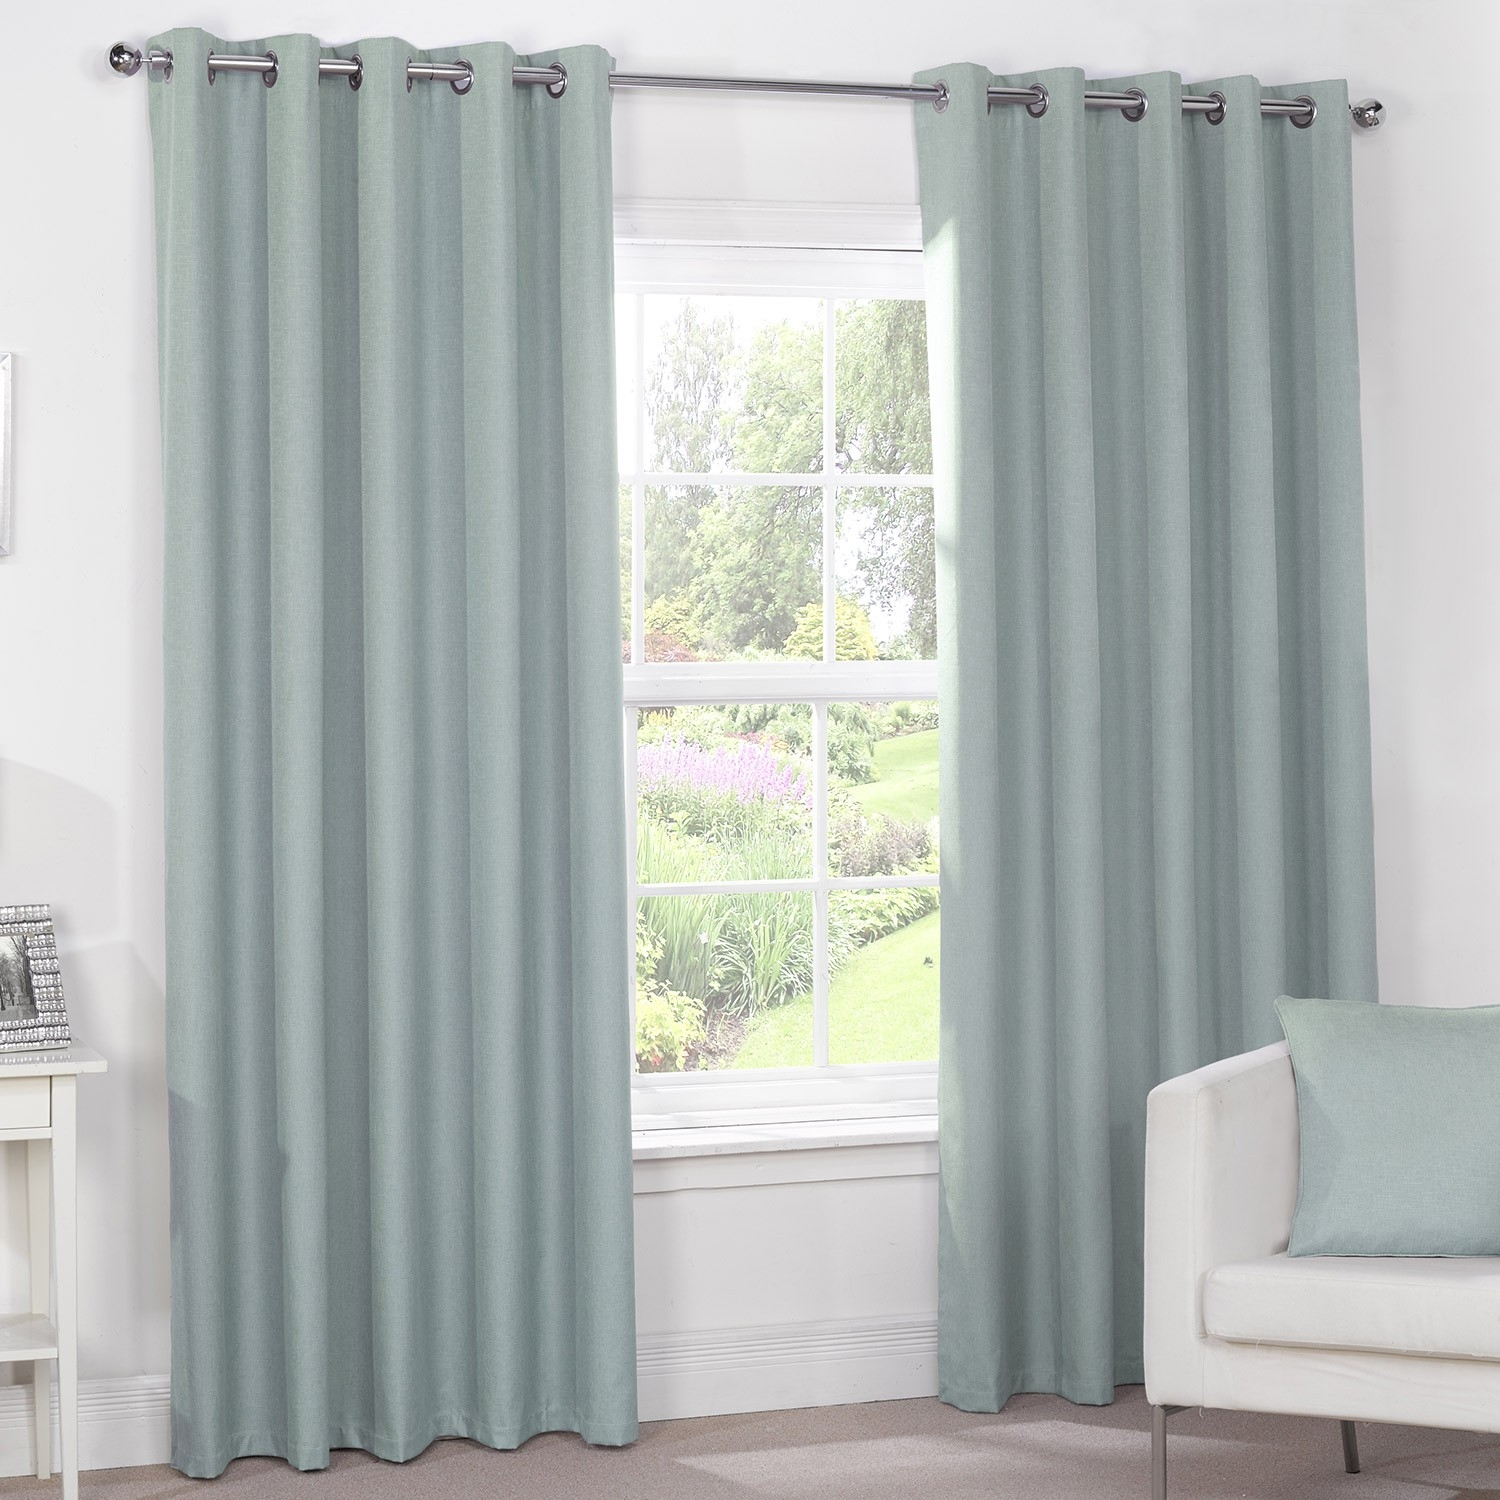 Luna Duck Egg Luxury Blackout Eyelet Curtains Pair Julian Charles Inside Duck Egg Blue Blackout Curtains (View 7 of 15)